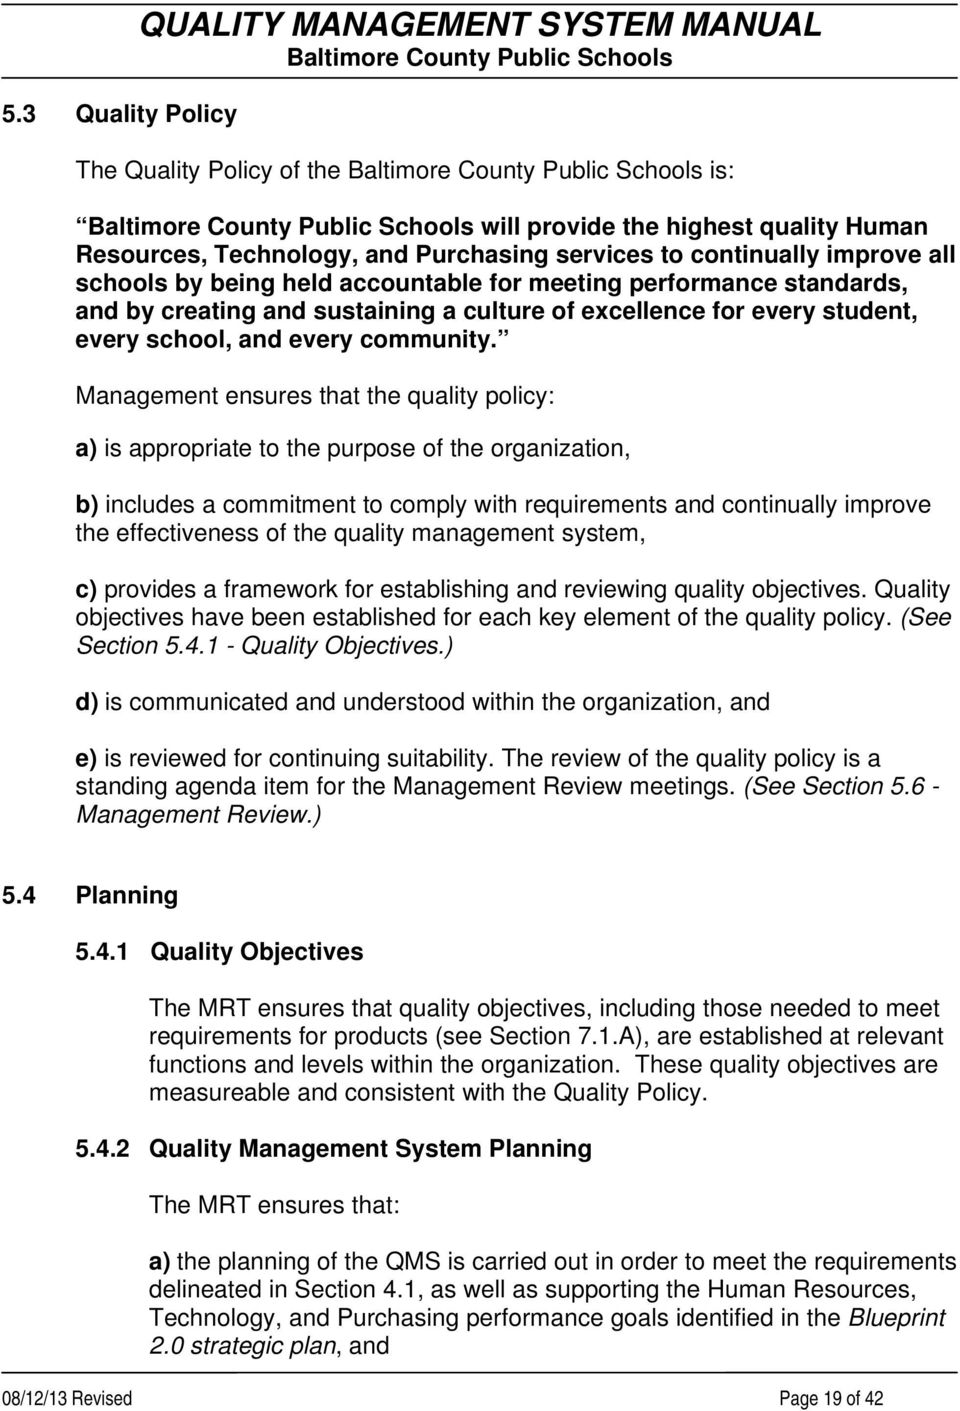 Management ensures that the quality policy: a) is appropriate to the purpose of the organization, b) includes a commitment to comply with requirements and continually improve the effectiveness of the